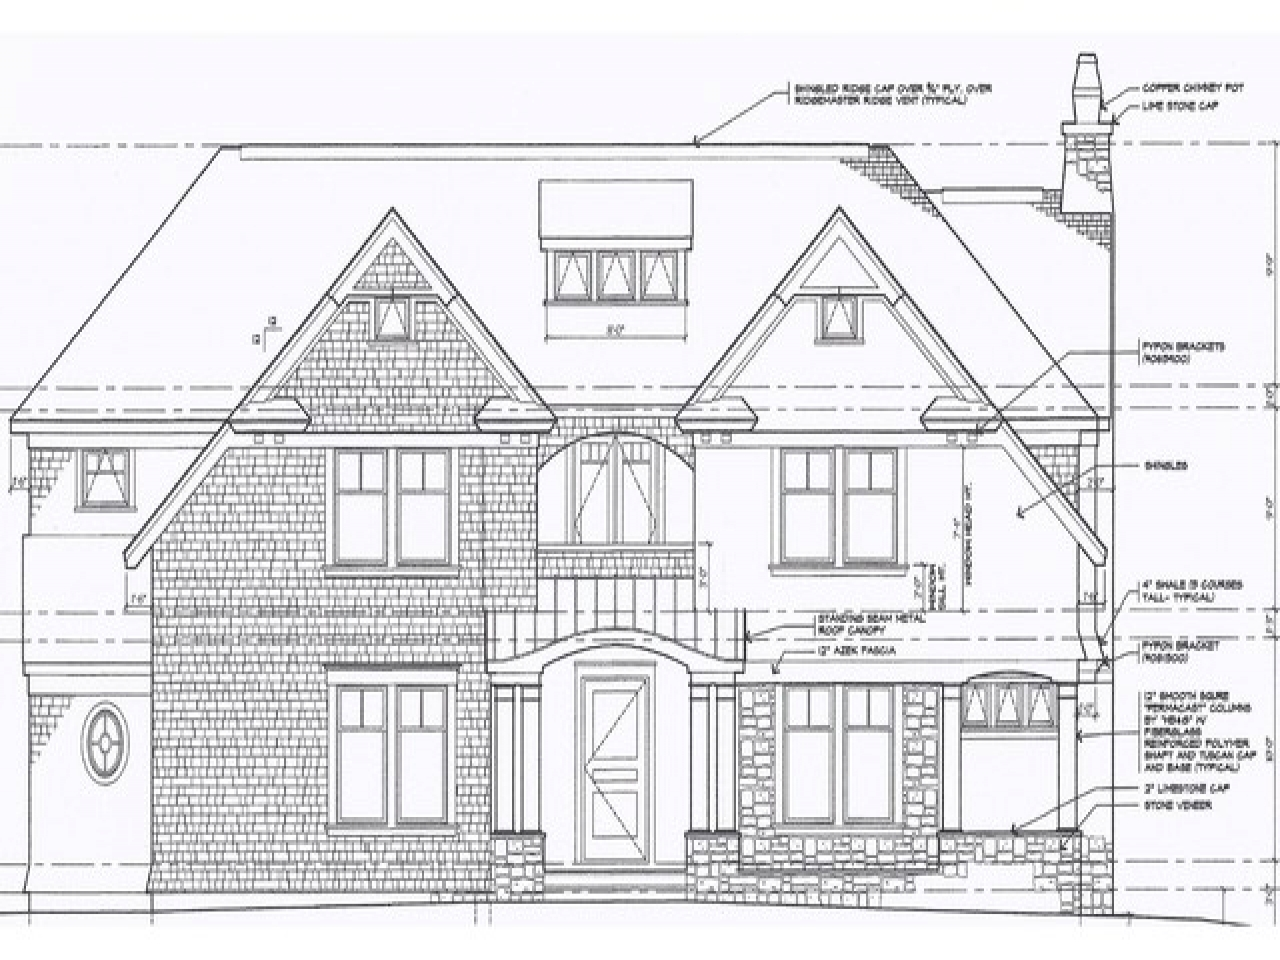 Front Elevation Architectural Design : Architectural exterior elevation drawings front